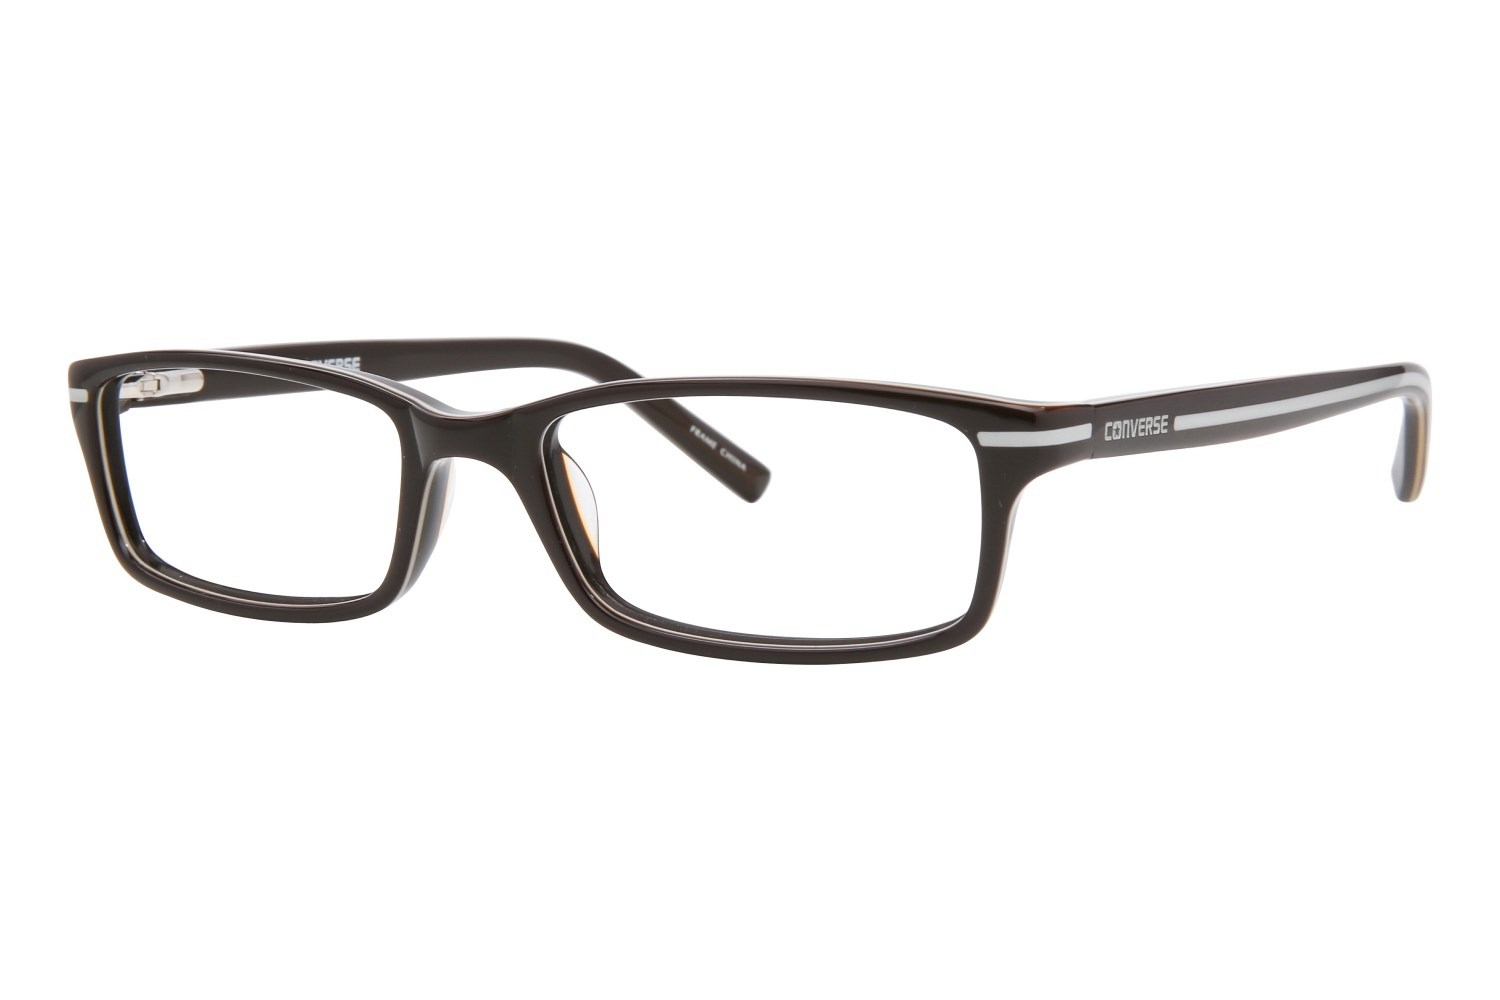 converse-k004-prescription-eyeglasses